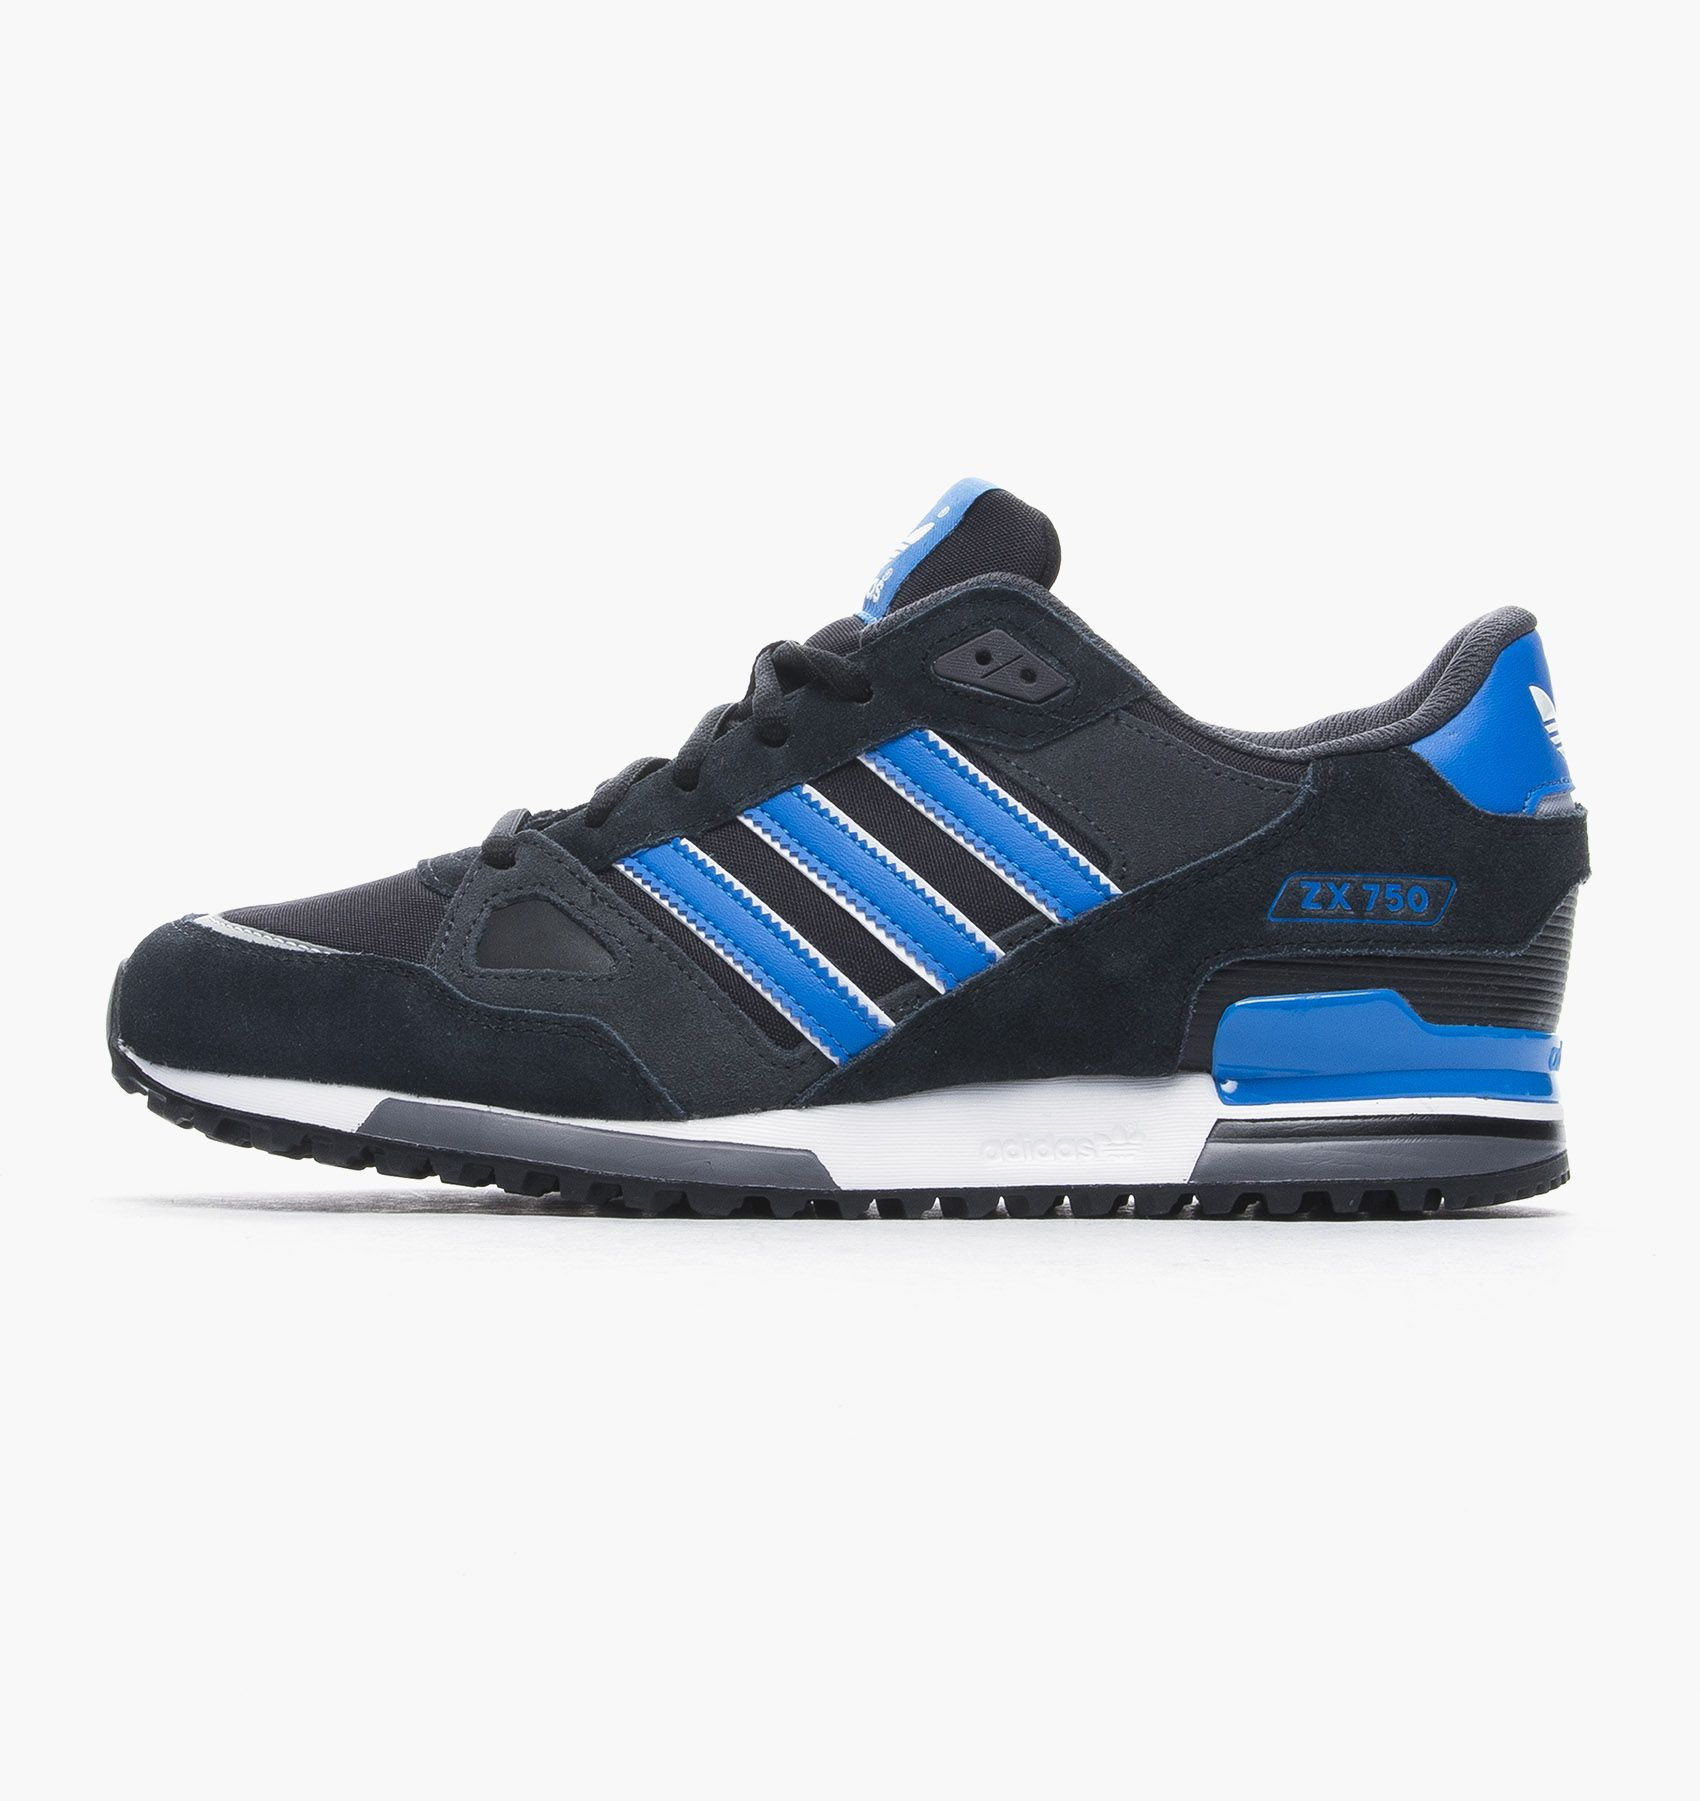 1af7782a8 adidas-originals-zx750-mens-running-trainer-shoes-black-7568-p.jpg